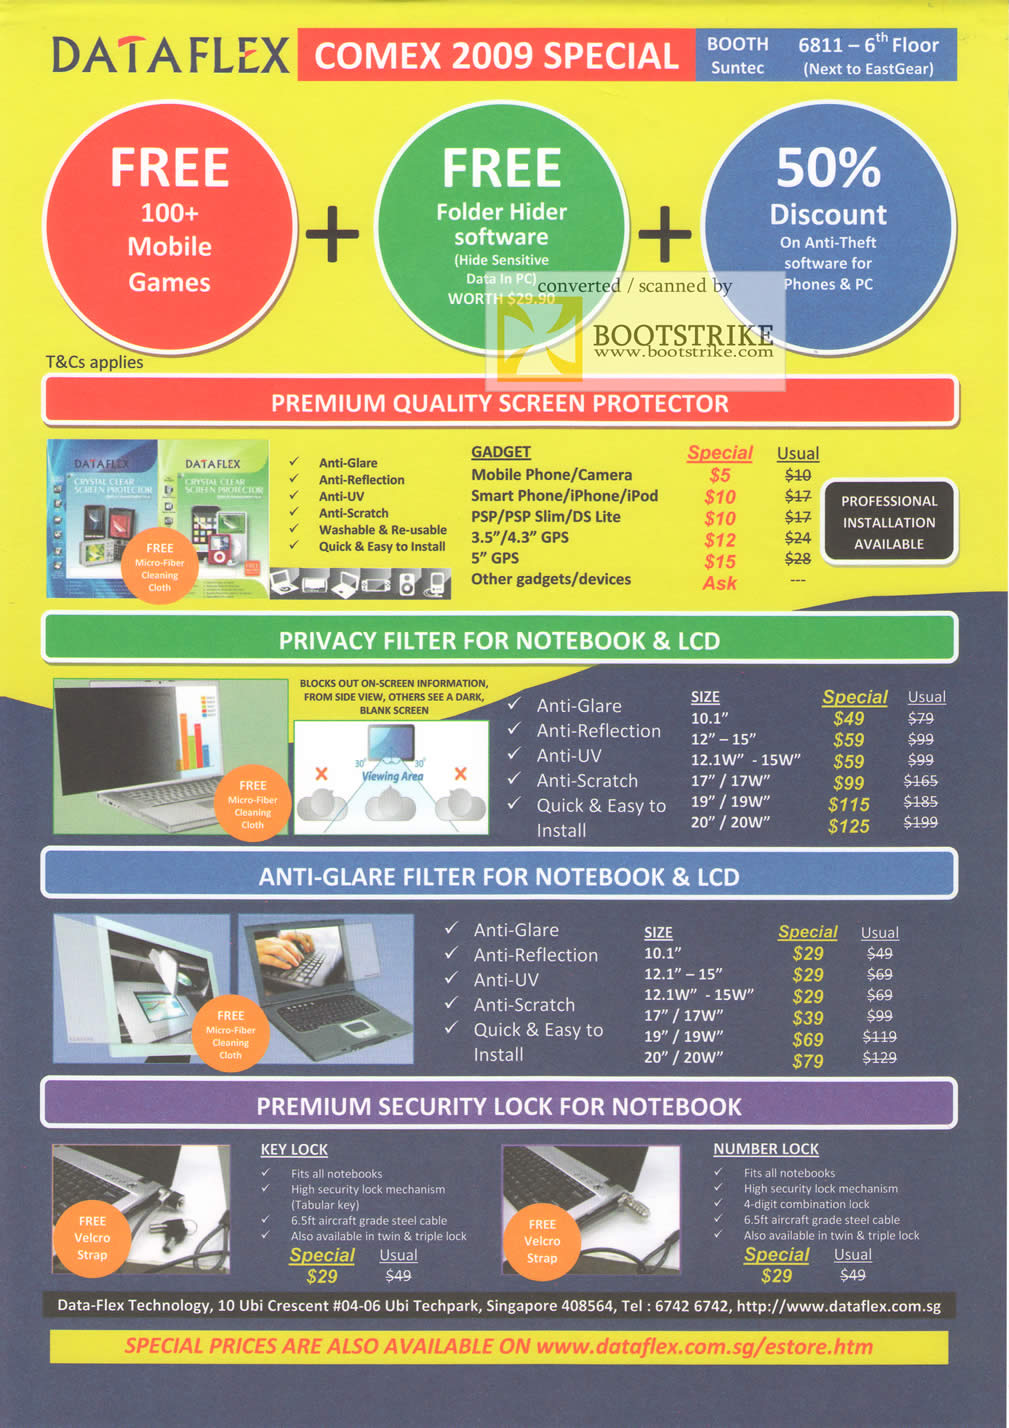 Comex 2009 price list image brochure of Dataflex Screen Protector Privacy Filter Anti-Glare Security Lock